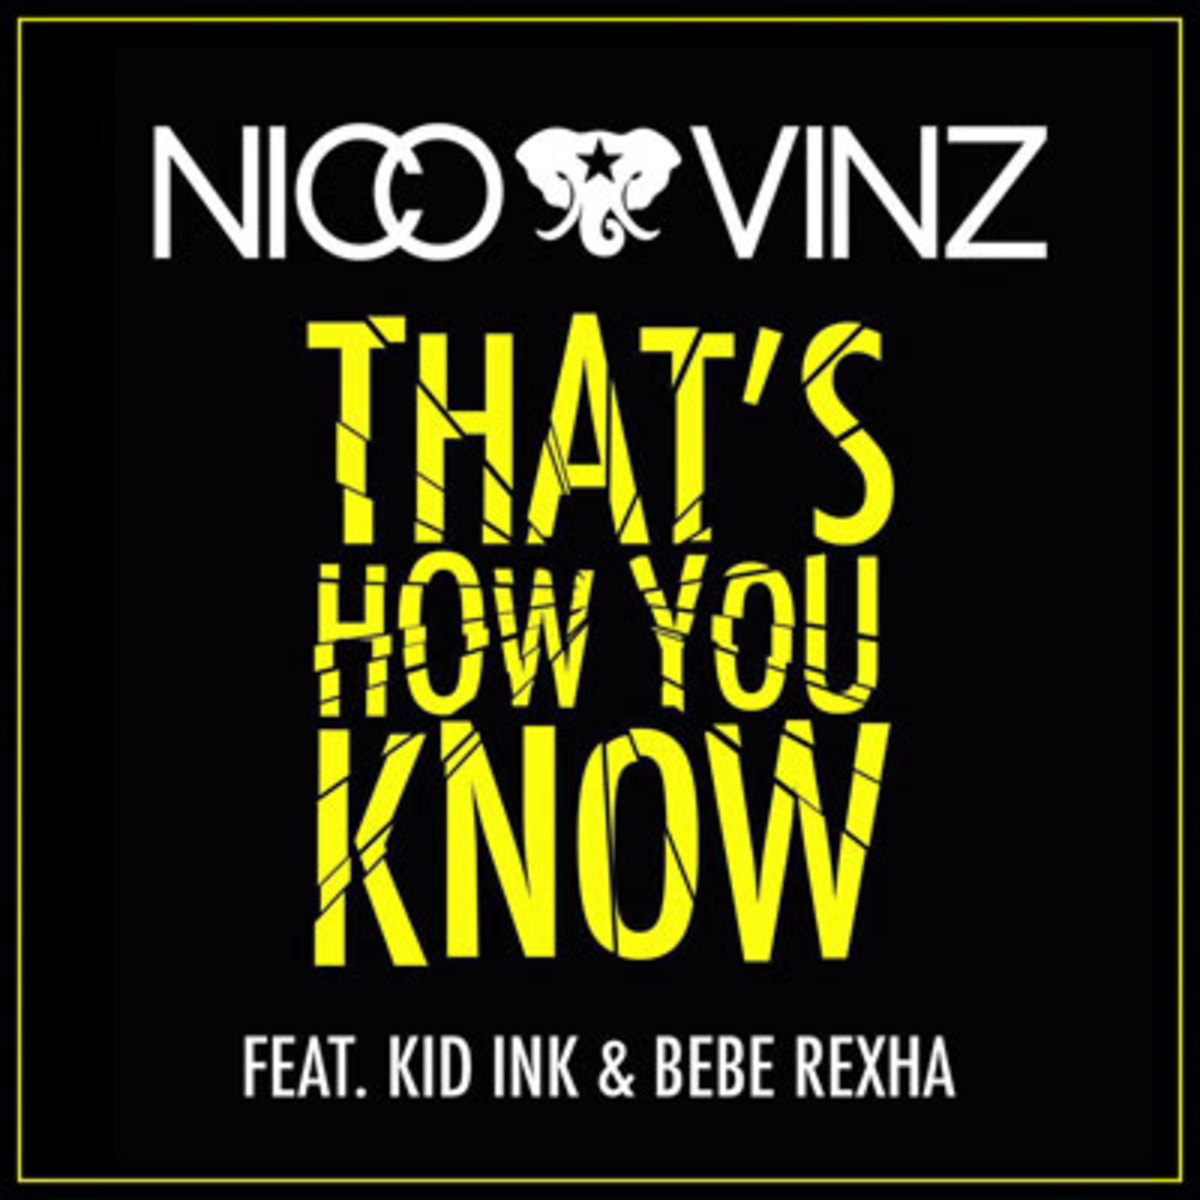 nico-vinz-thats-how-you-know.jpg